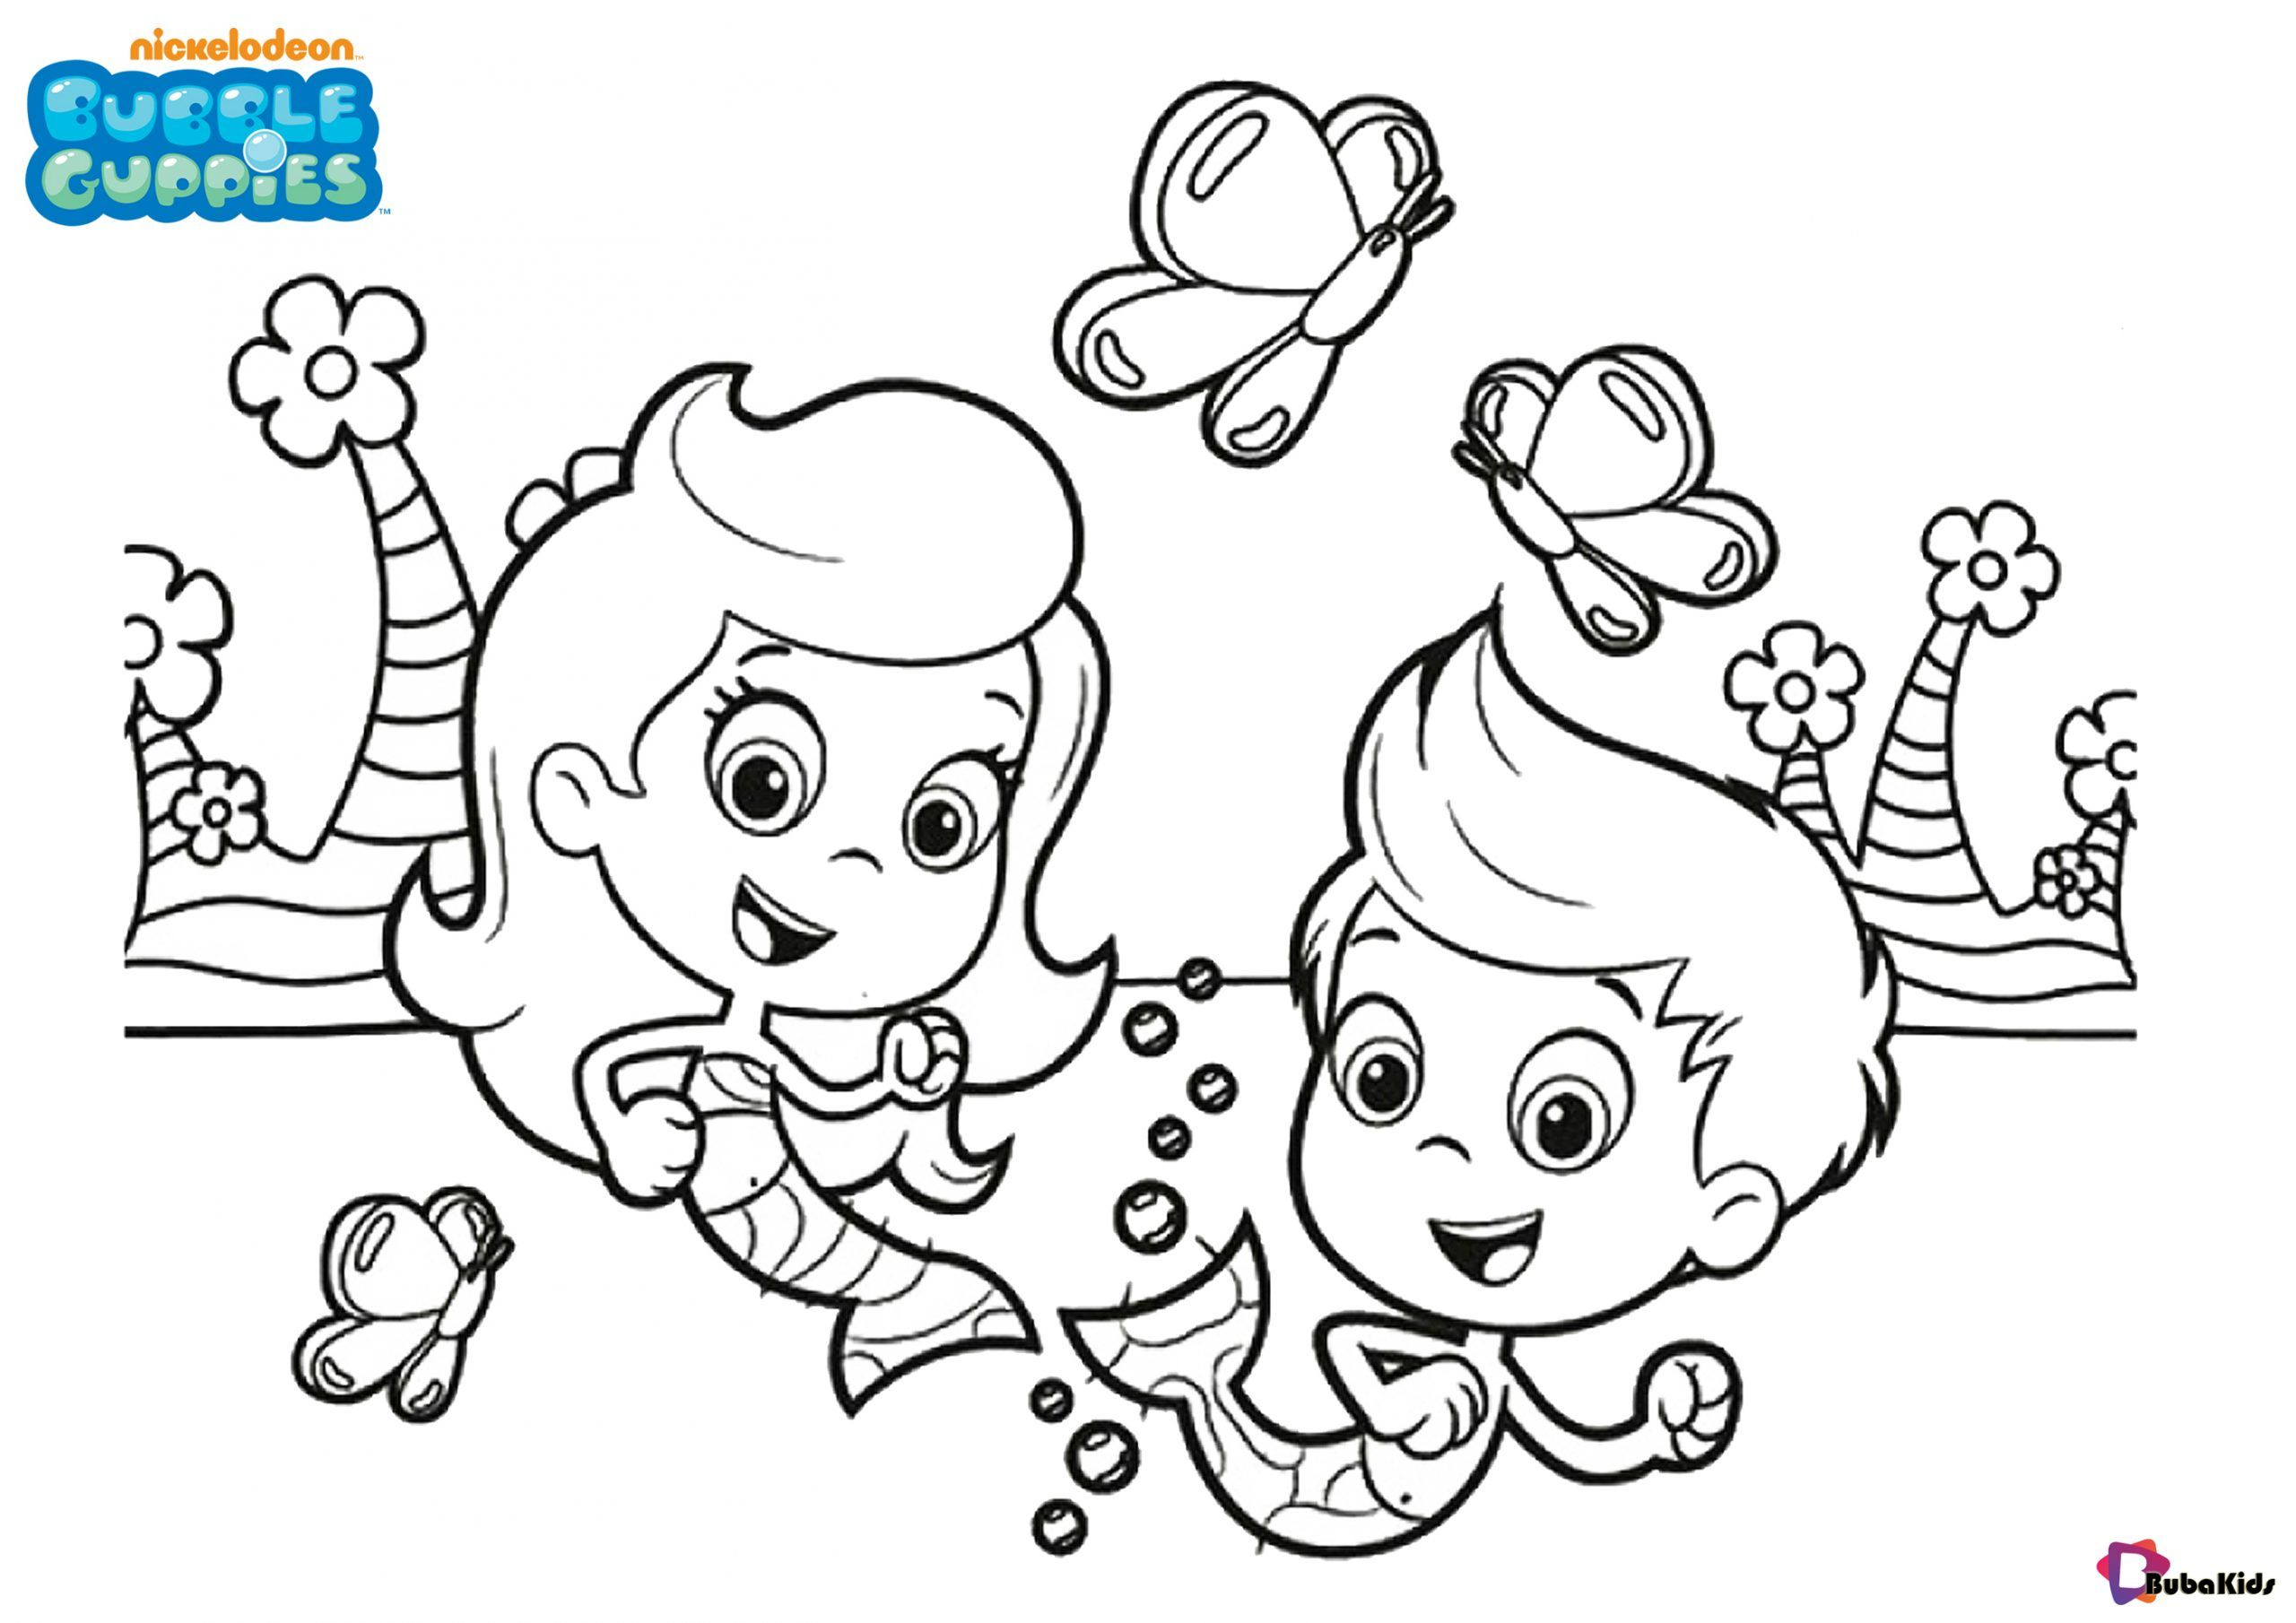 easy and printable bubble guppies colouring for kids collection of co coloring butterfly coloring pages Bubble Guppy Coloring Page